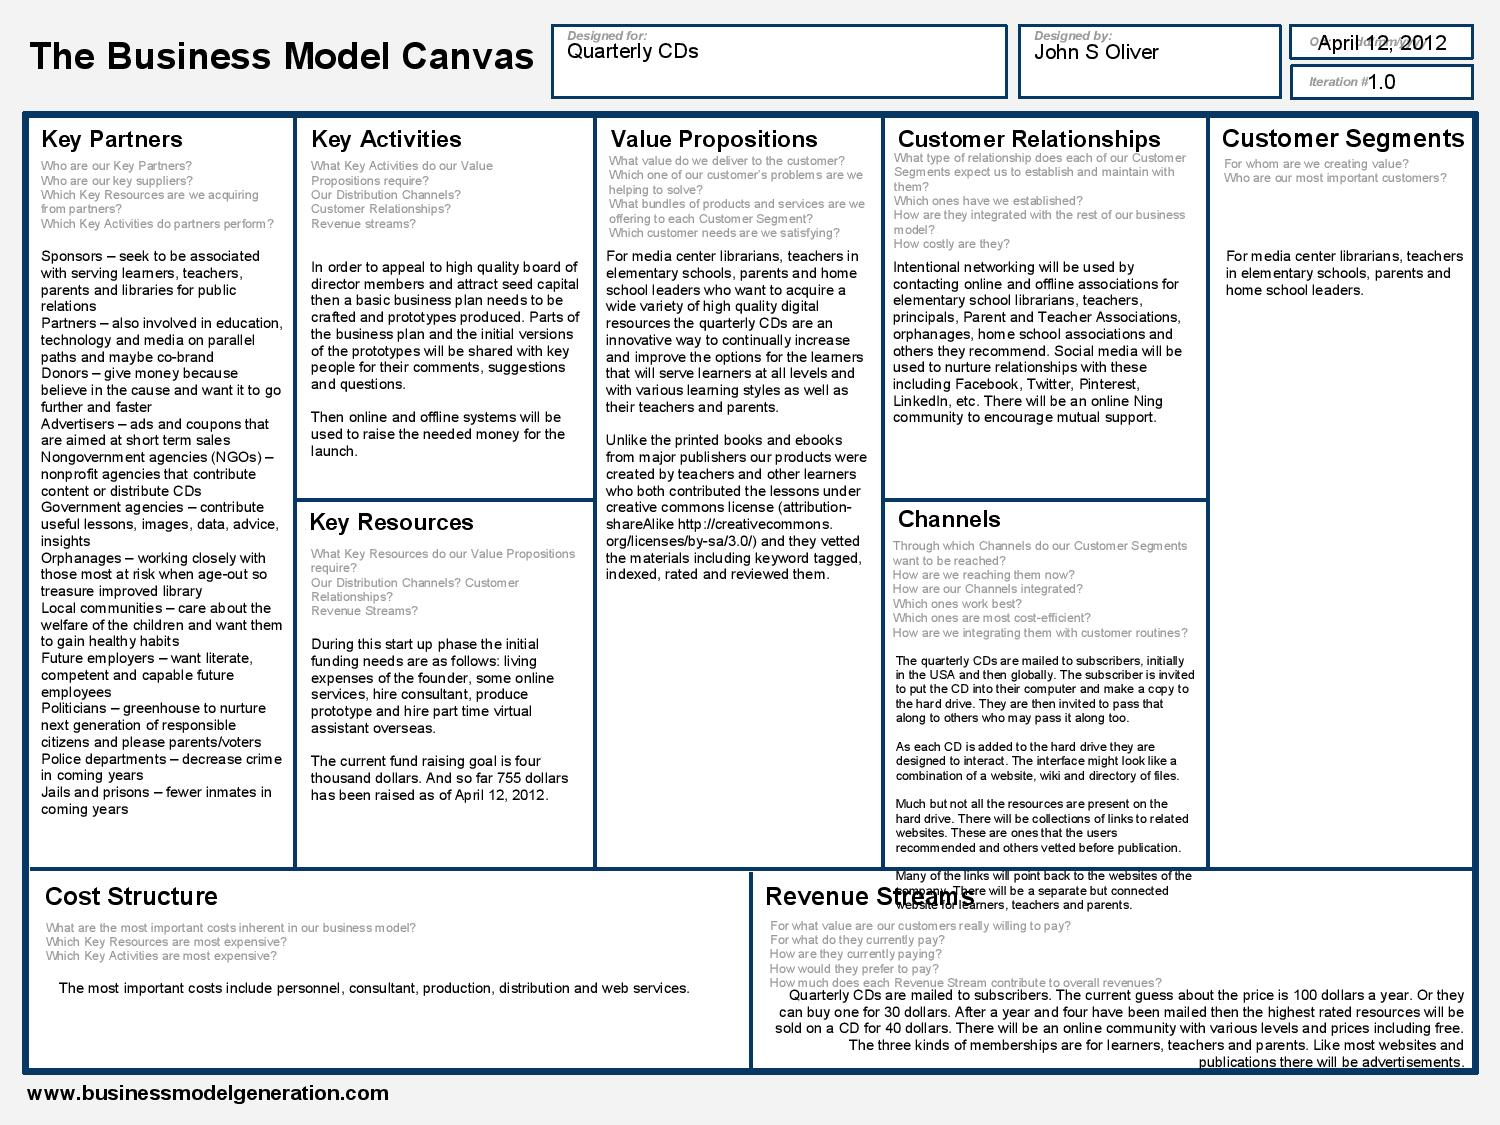 Business model canvas in word vatozozdevelopment business model canvas in word business model template word flashek Image collections